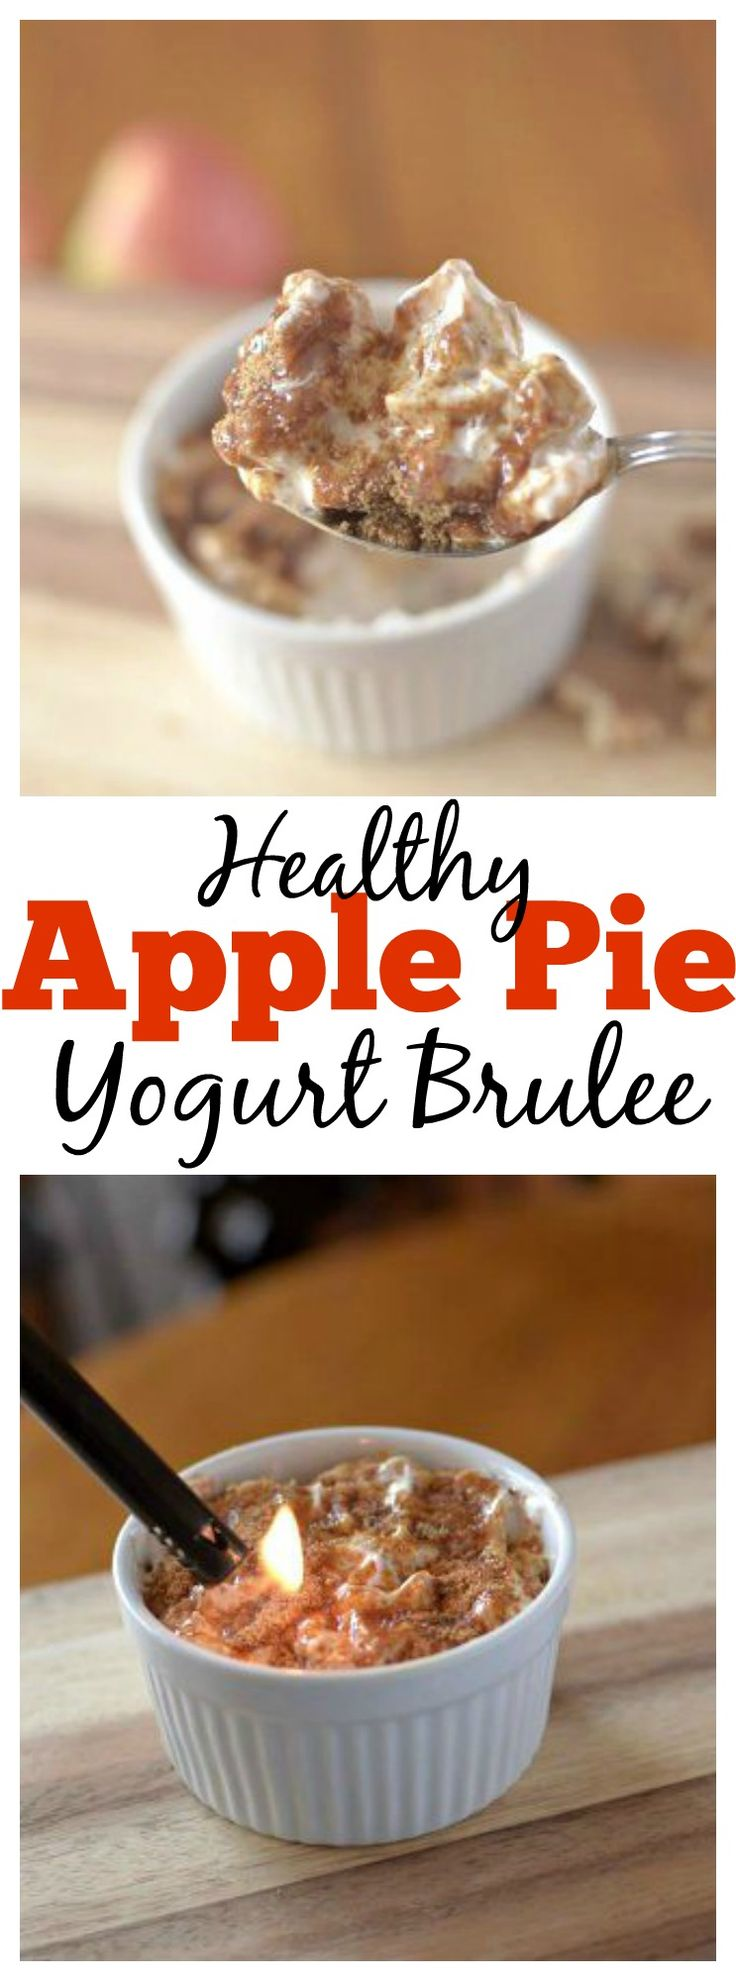 are you sick of plain old greek yogurt for breakfast? Then spice up your breakfast and try this #healthy Apple Pie Yogurt Brûlée that tastes like your favorite dessert for breakfast! Use coconut yogurt for a #vegan and #paleo version!